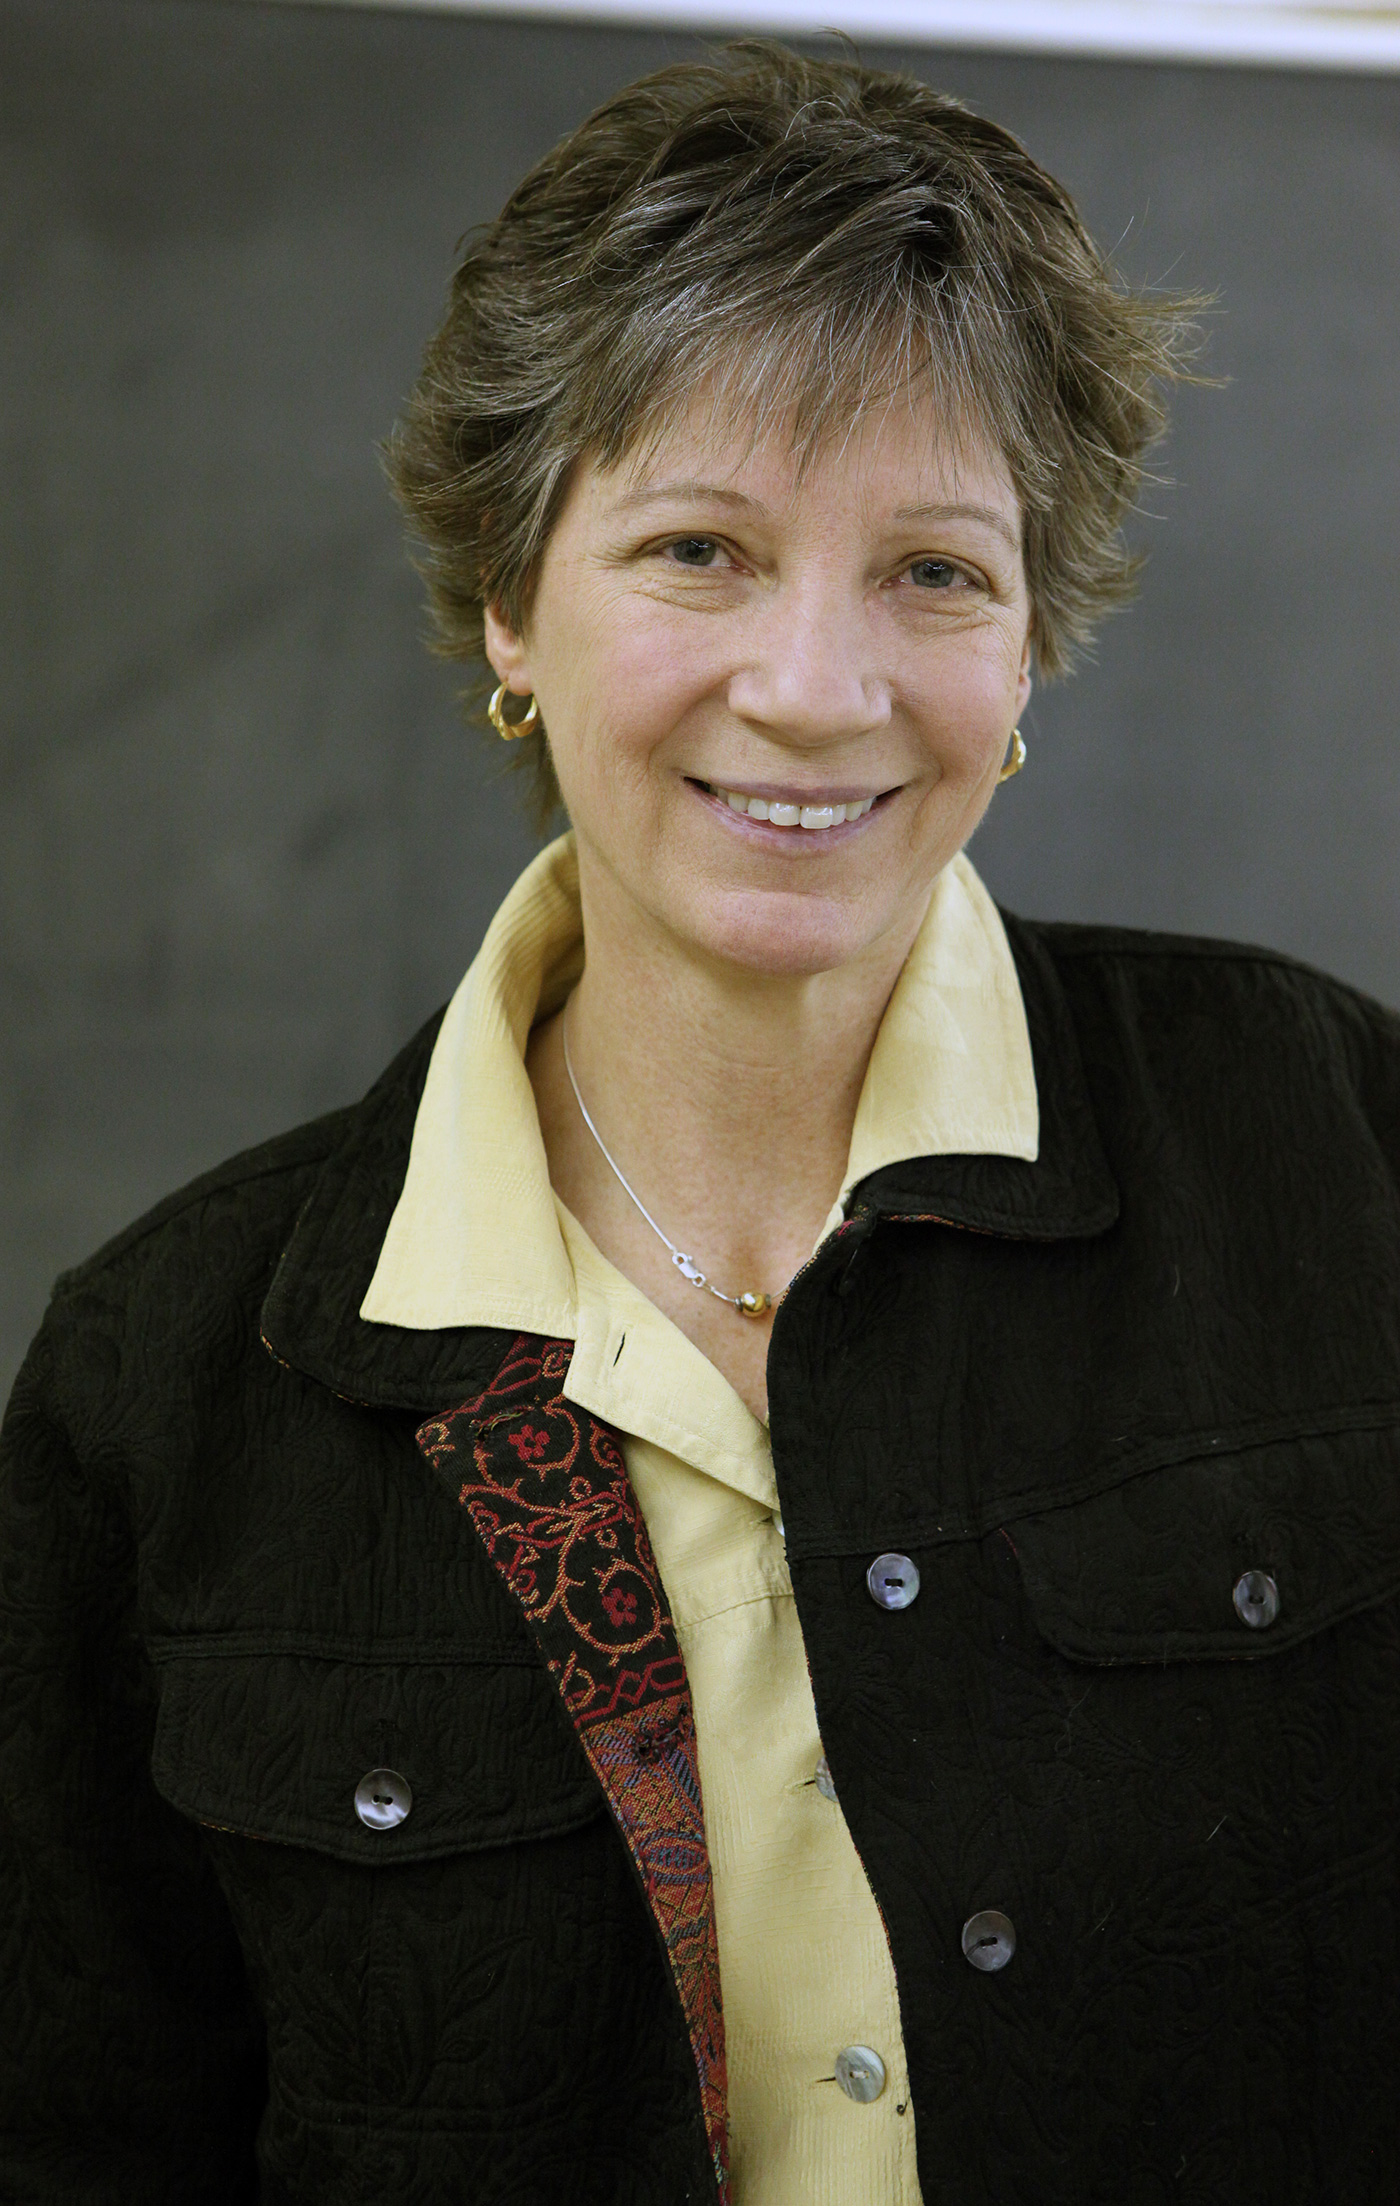 Lynne Samuelson is the HEROES Co-Director at UMass Lowell.